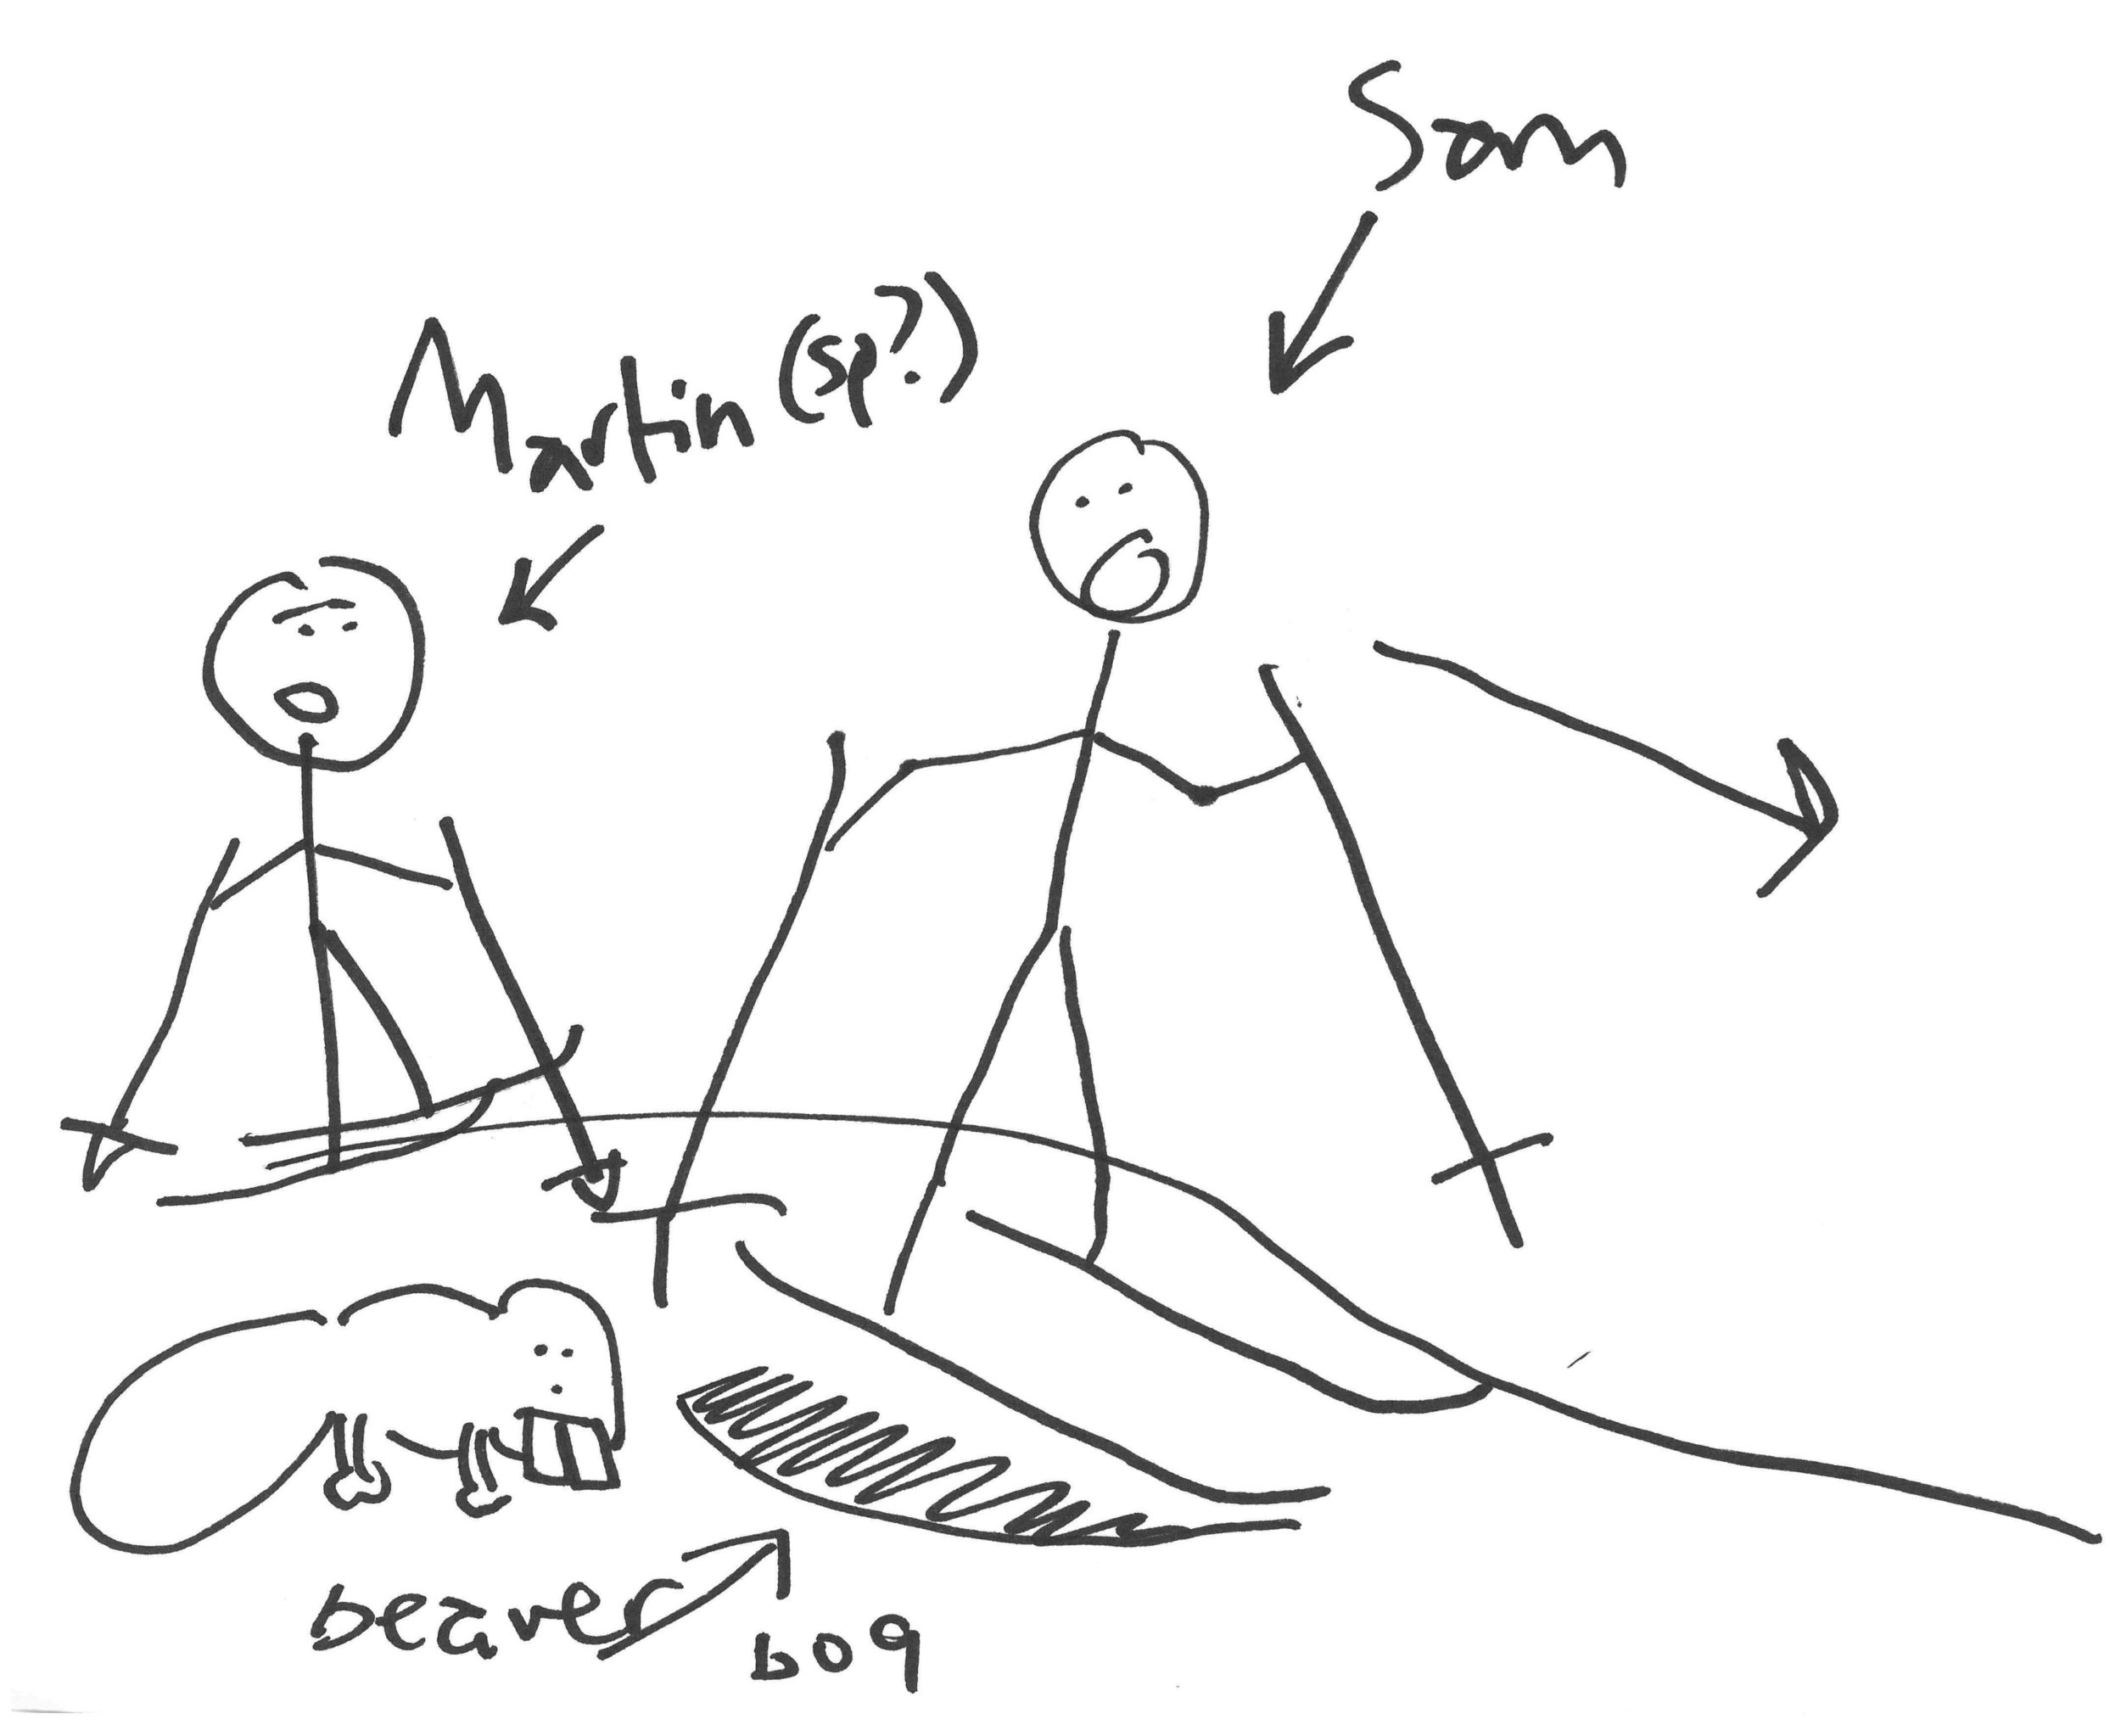 This is an artist's rendering of what happened at the race. While artistic and historical license has been taken, we believe that this image is true to the essence, values, and integrity of a story that is cherished by millions of people worldwide.   Artist:  Taylor Quimby